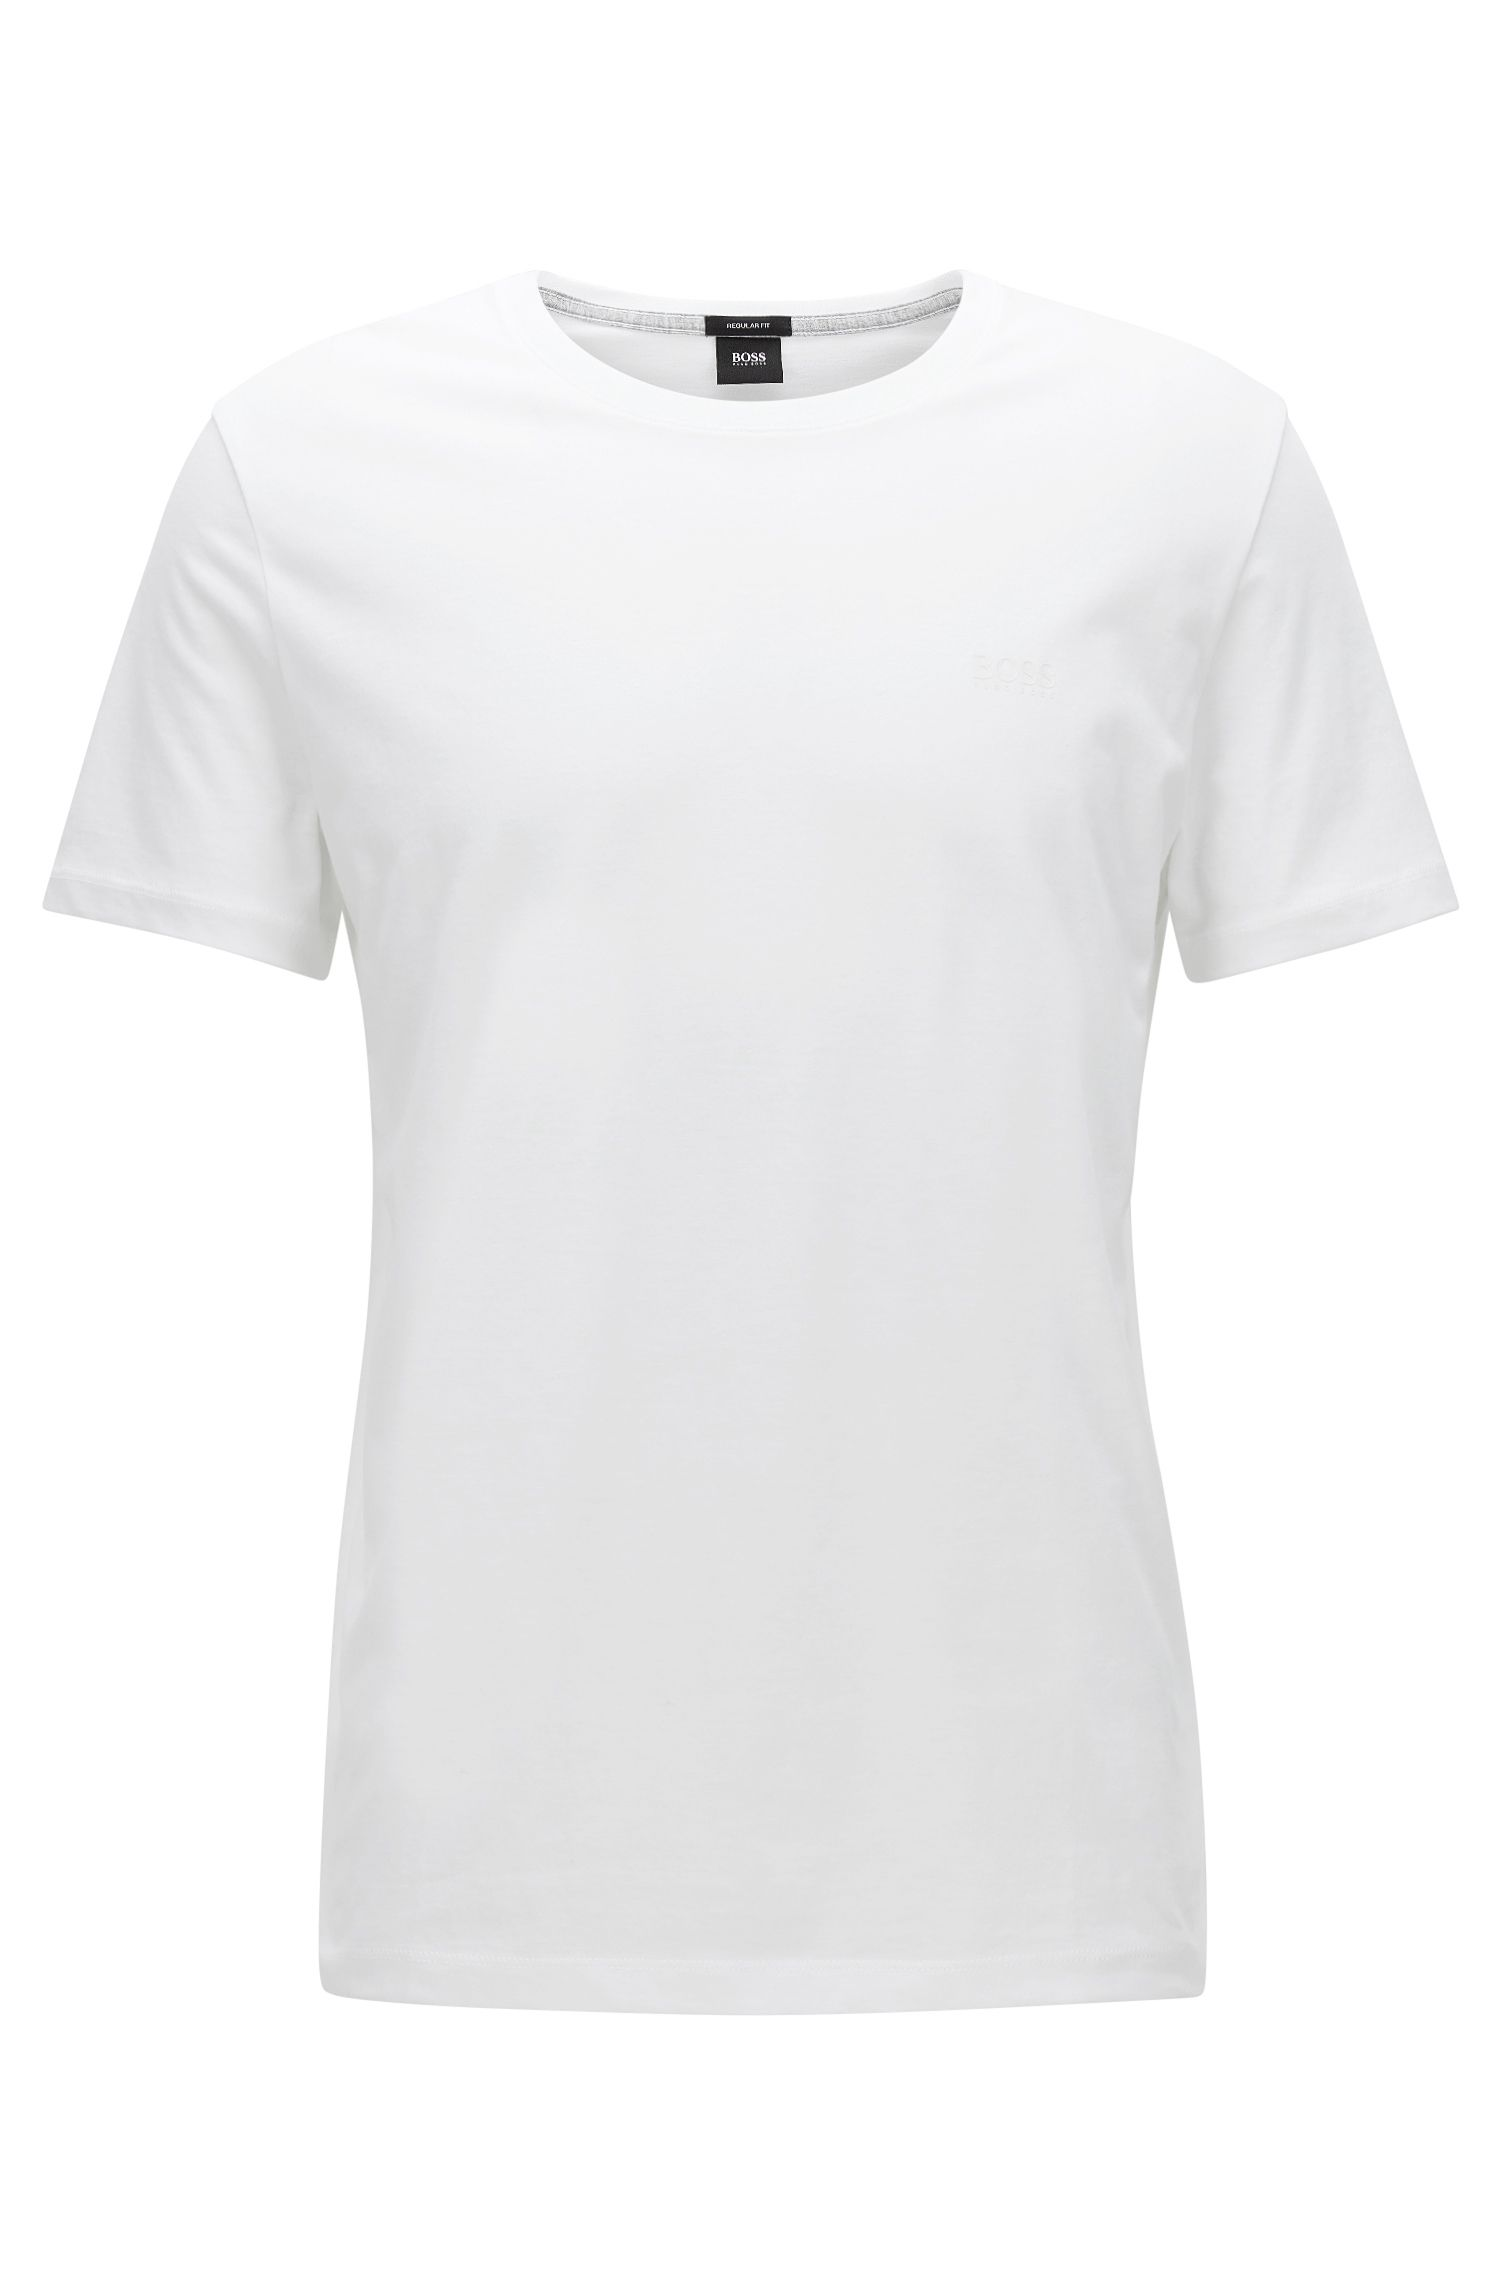 Regular-Fit T-Shirt aus weicher Baumwolle